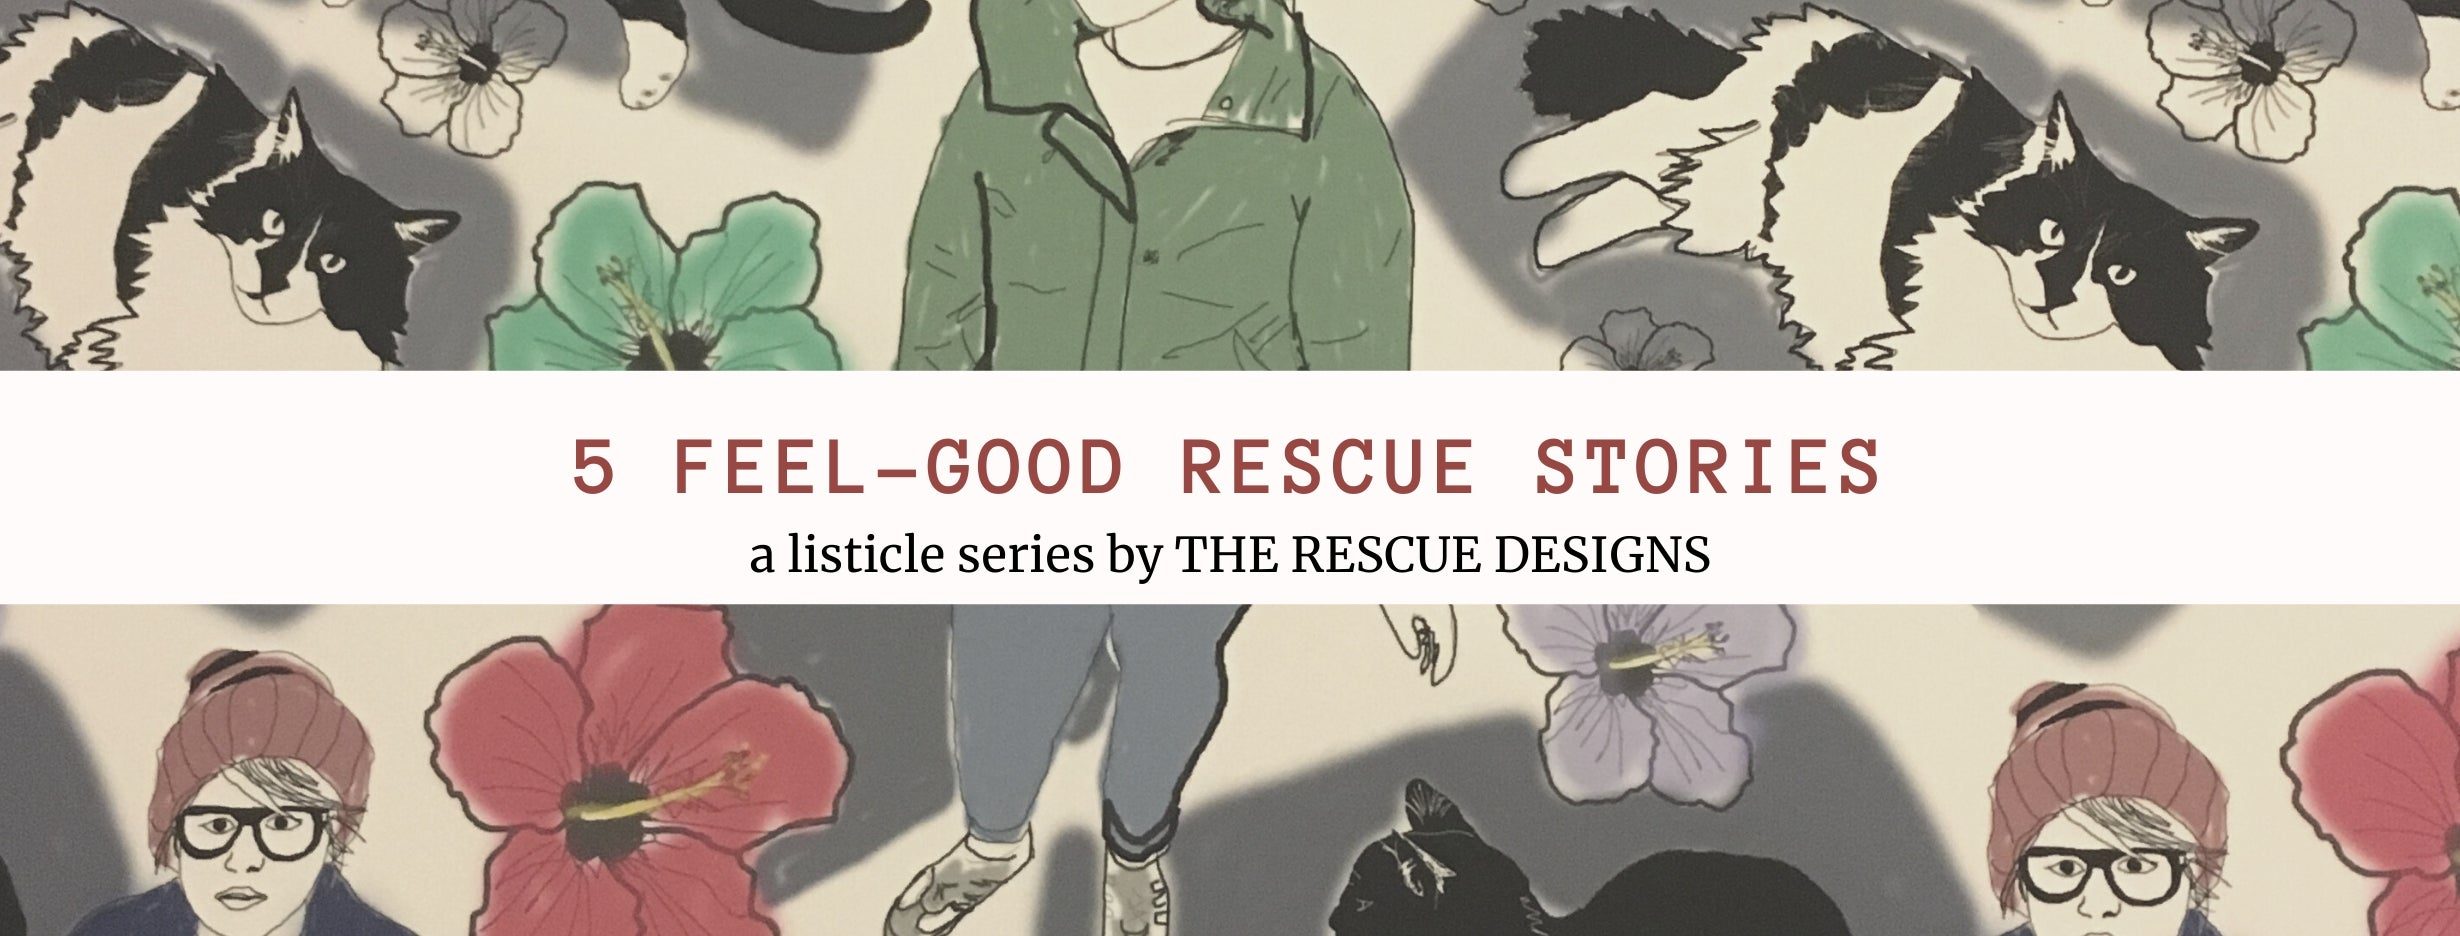 5 Feel-Good Rescue Stories